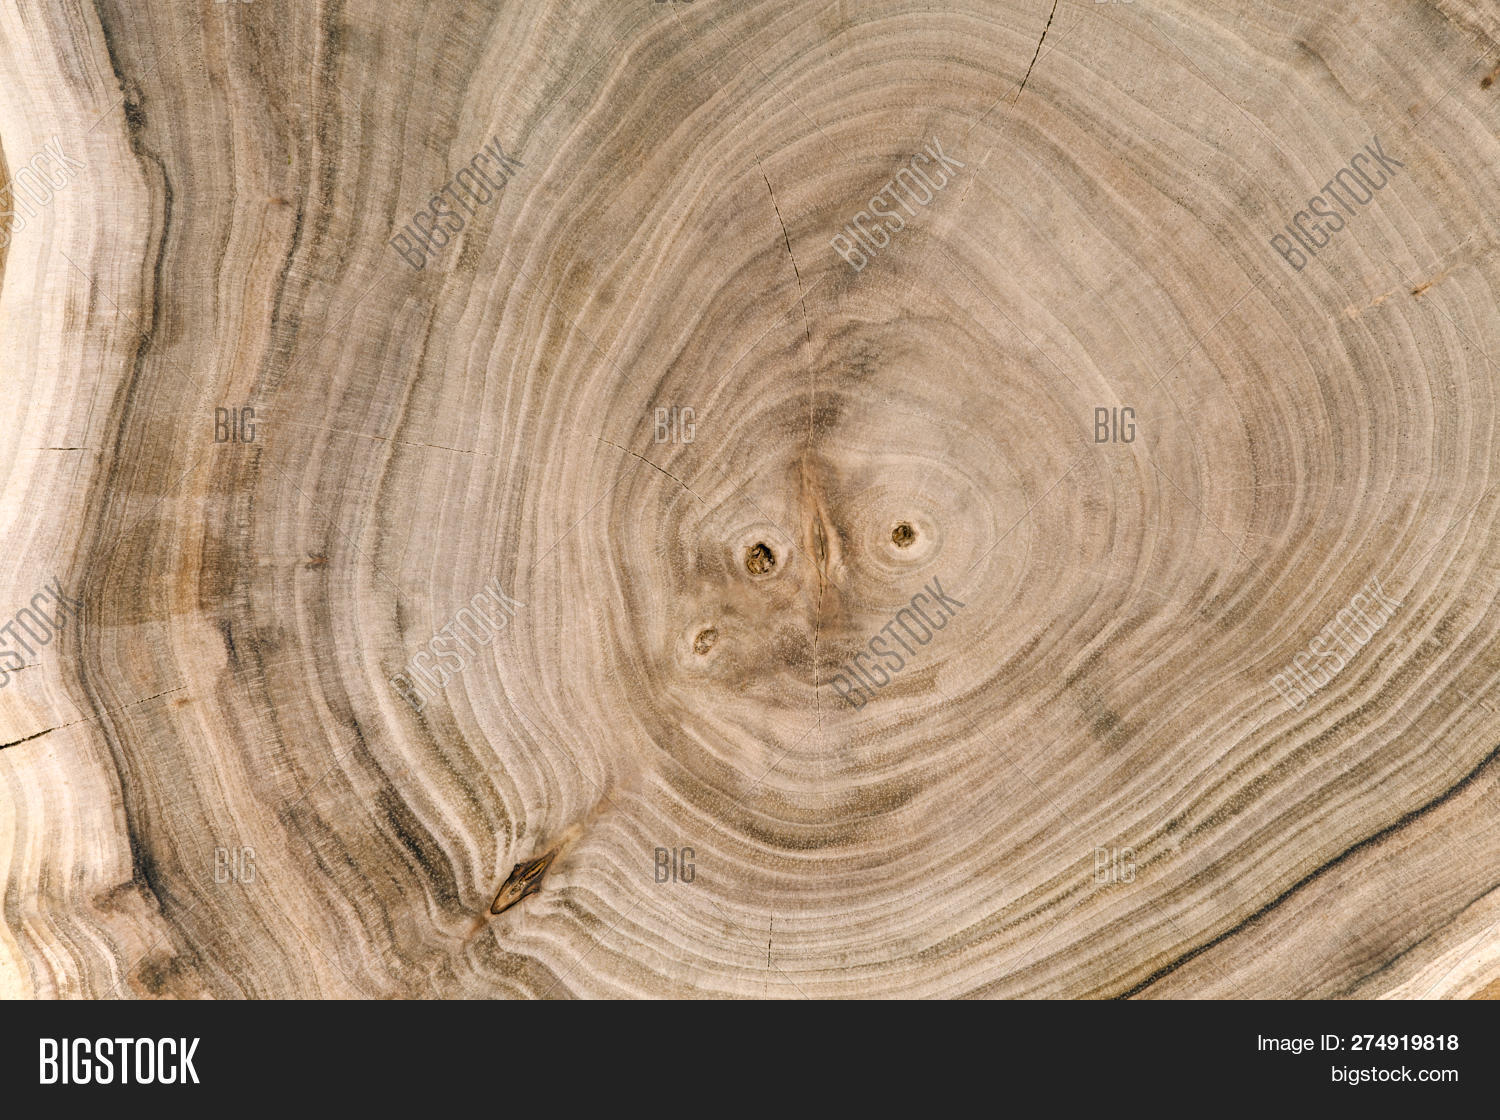 Wooden Cut Texture  Image & Photo (Free Trial) | Bigstock